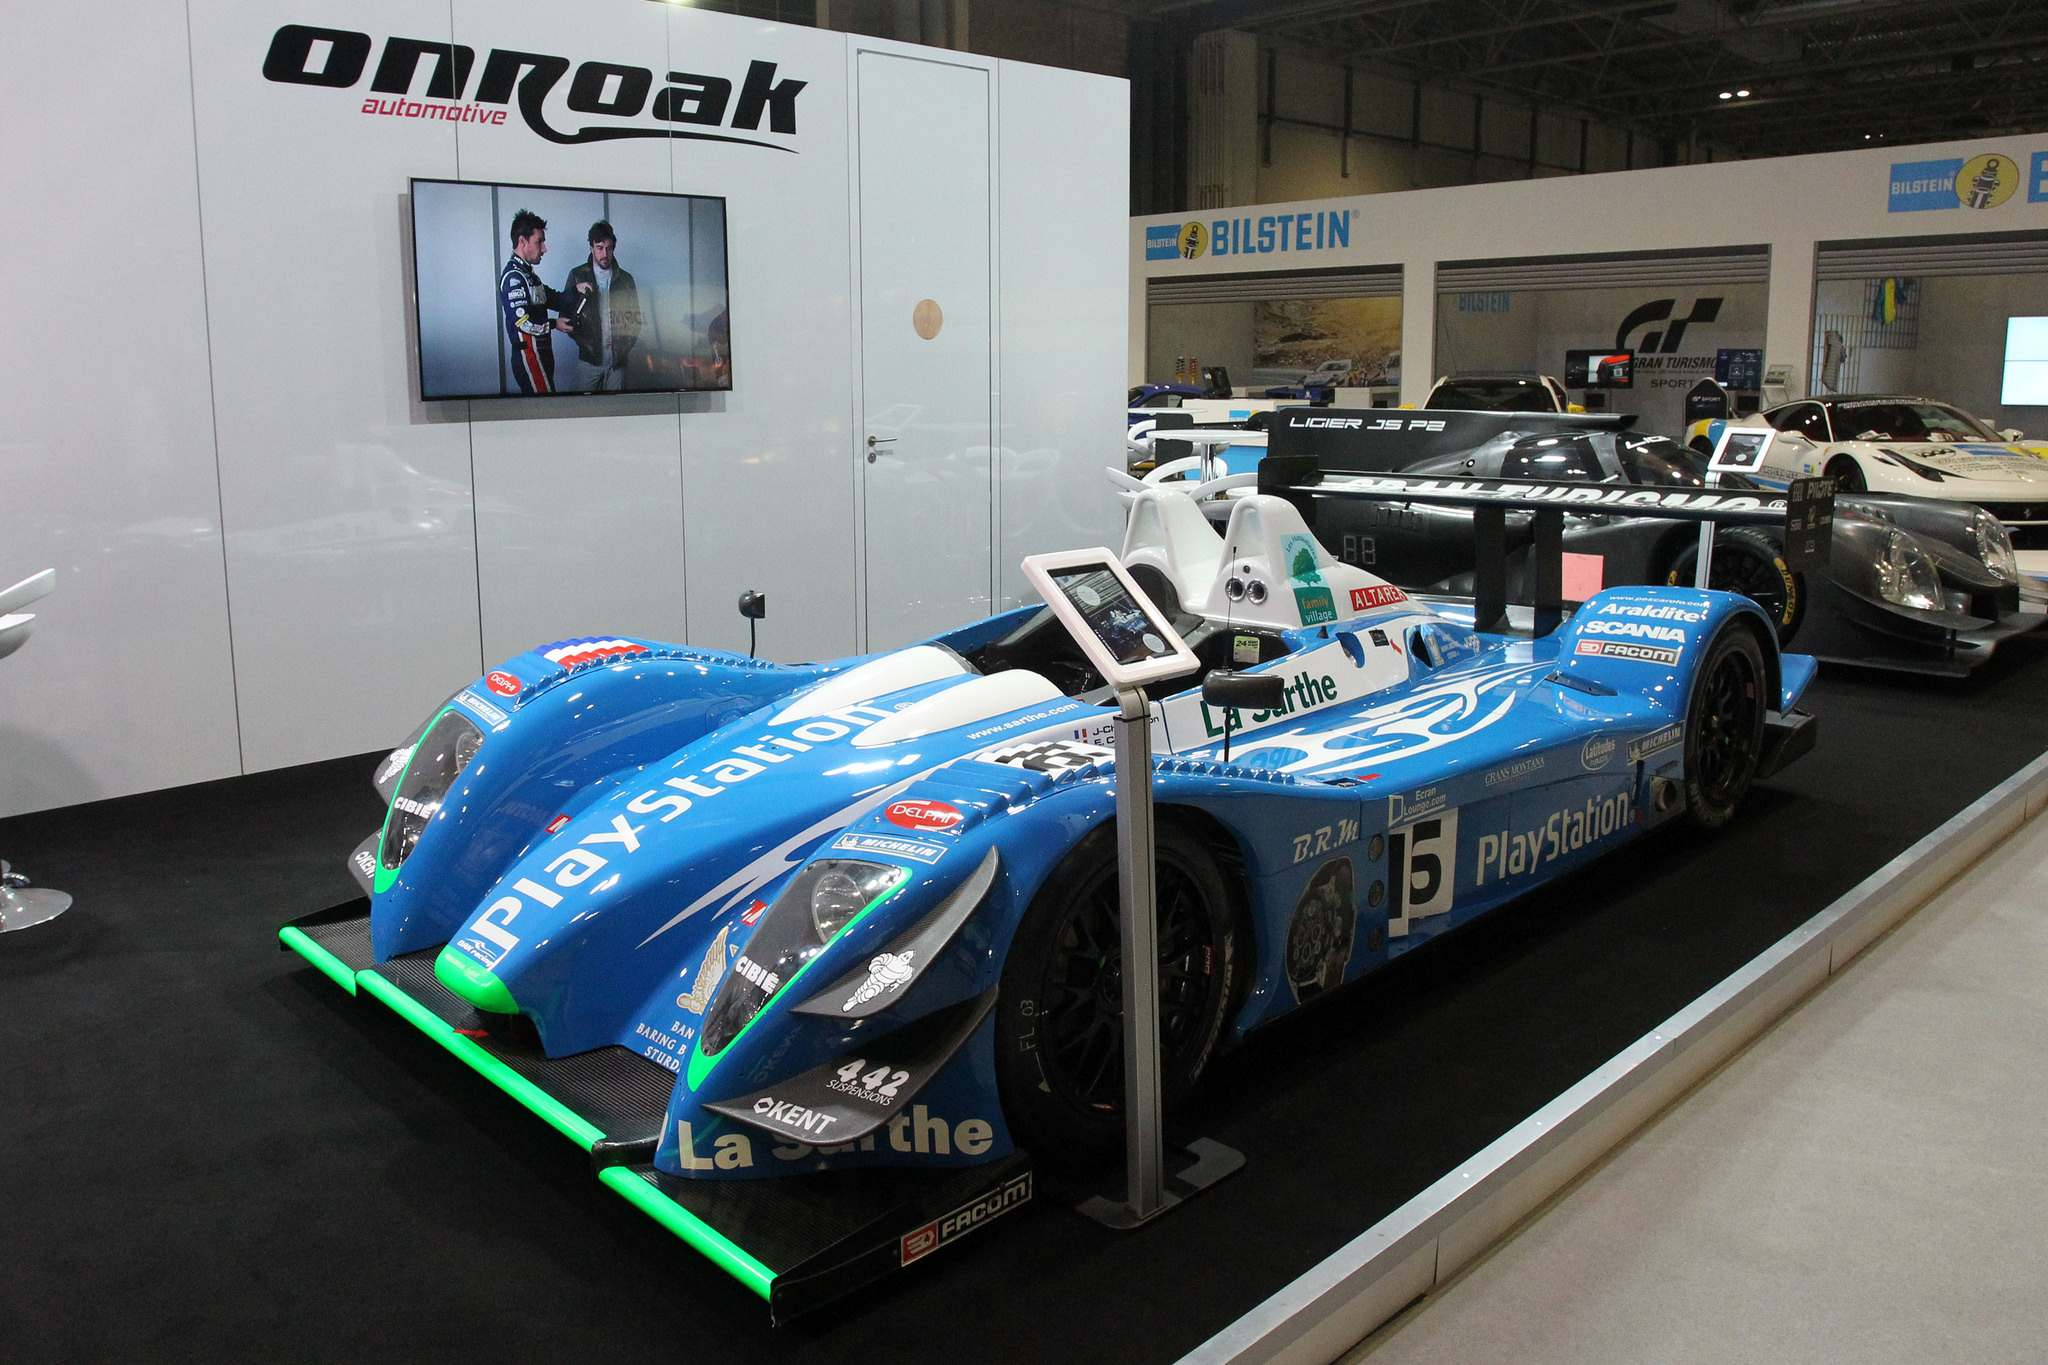 ligier 20188 Ligier at Autosport International Show 2018